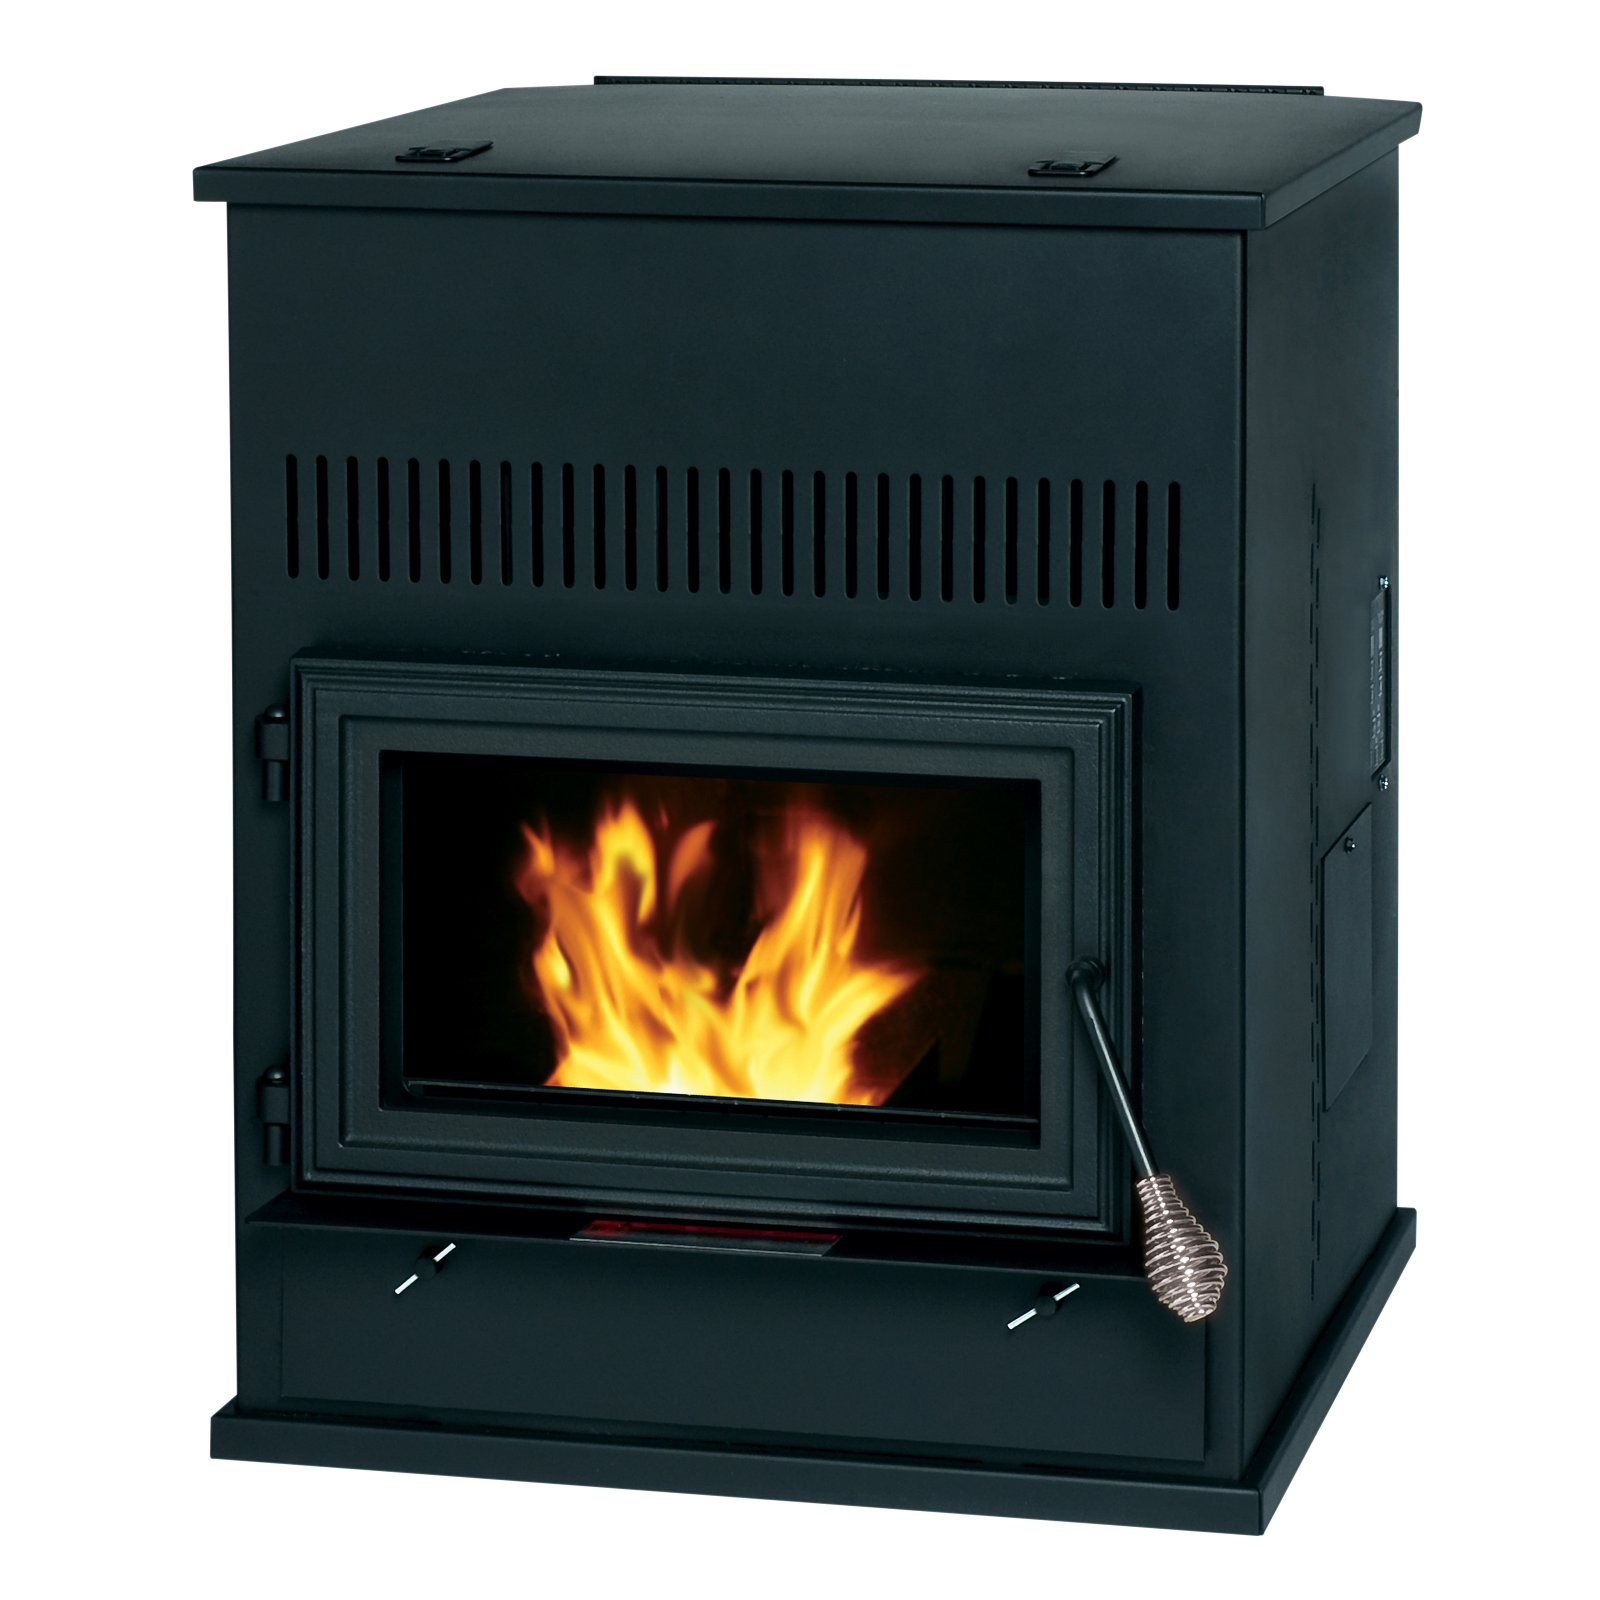 Summers Heat SHPAH Pellet Stove by Englands Stove Works Inc